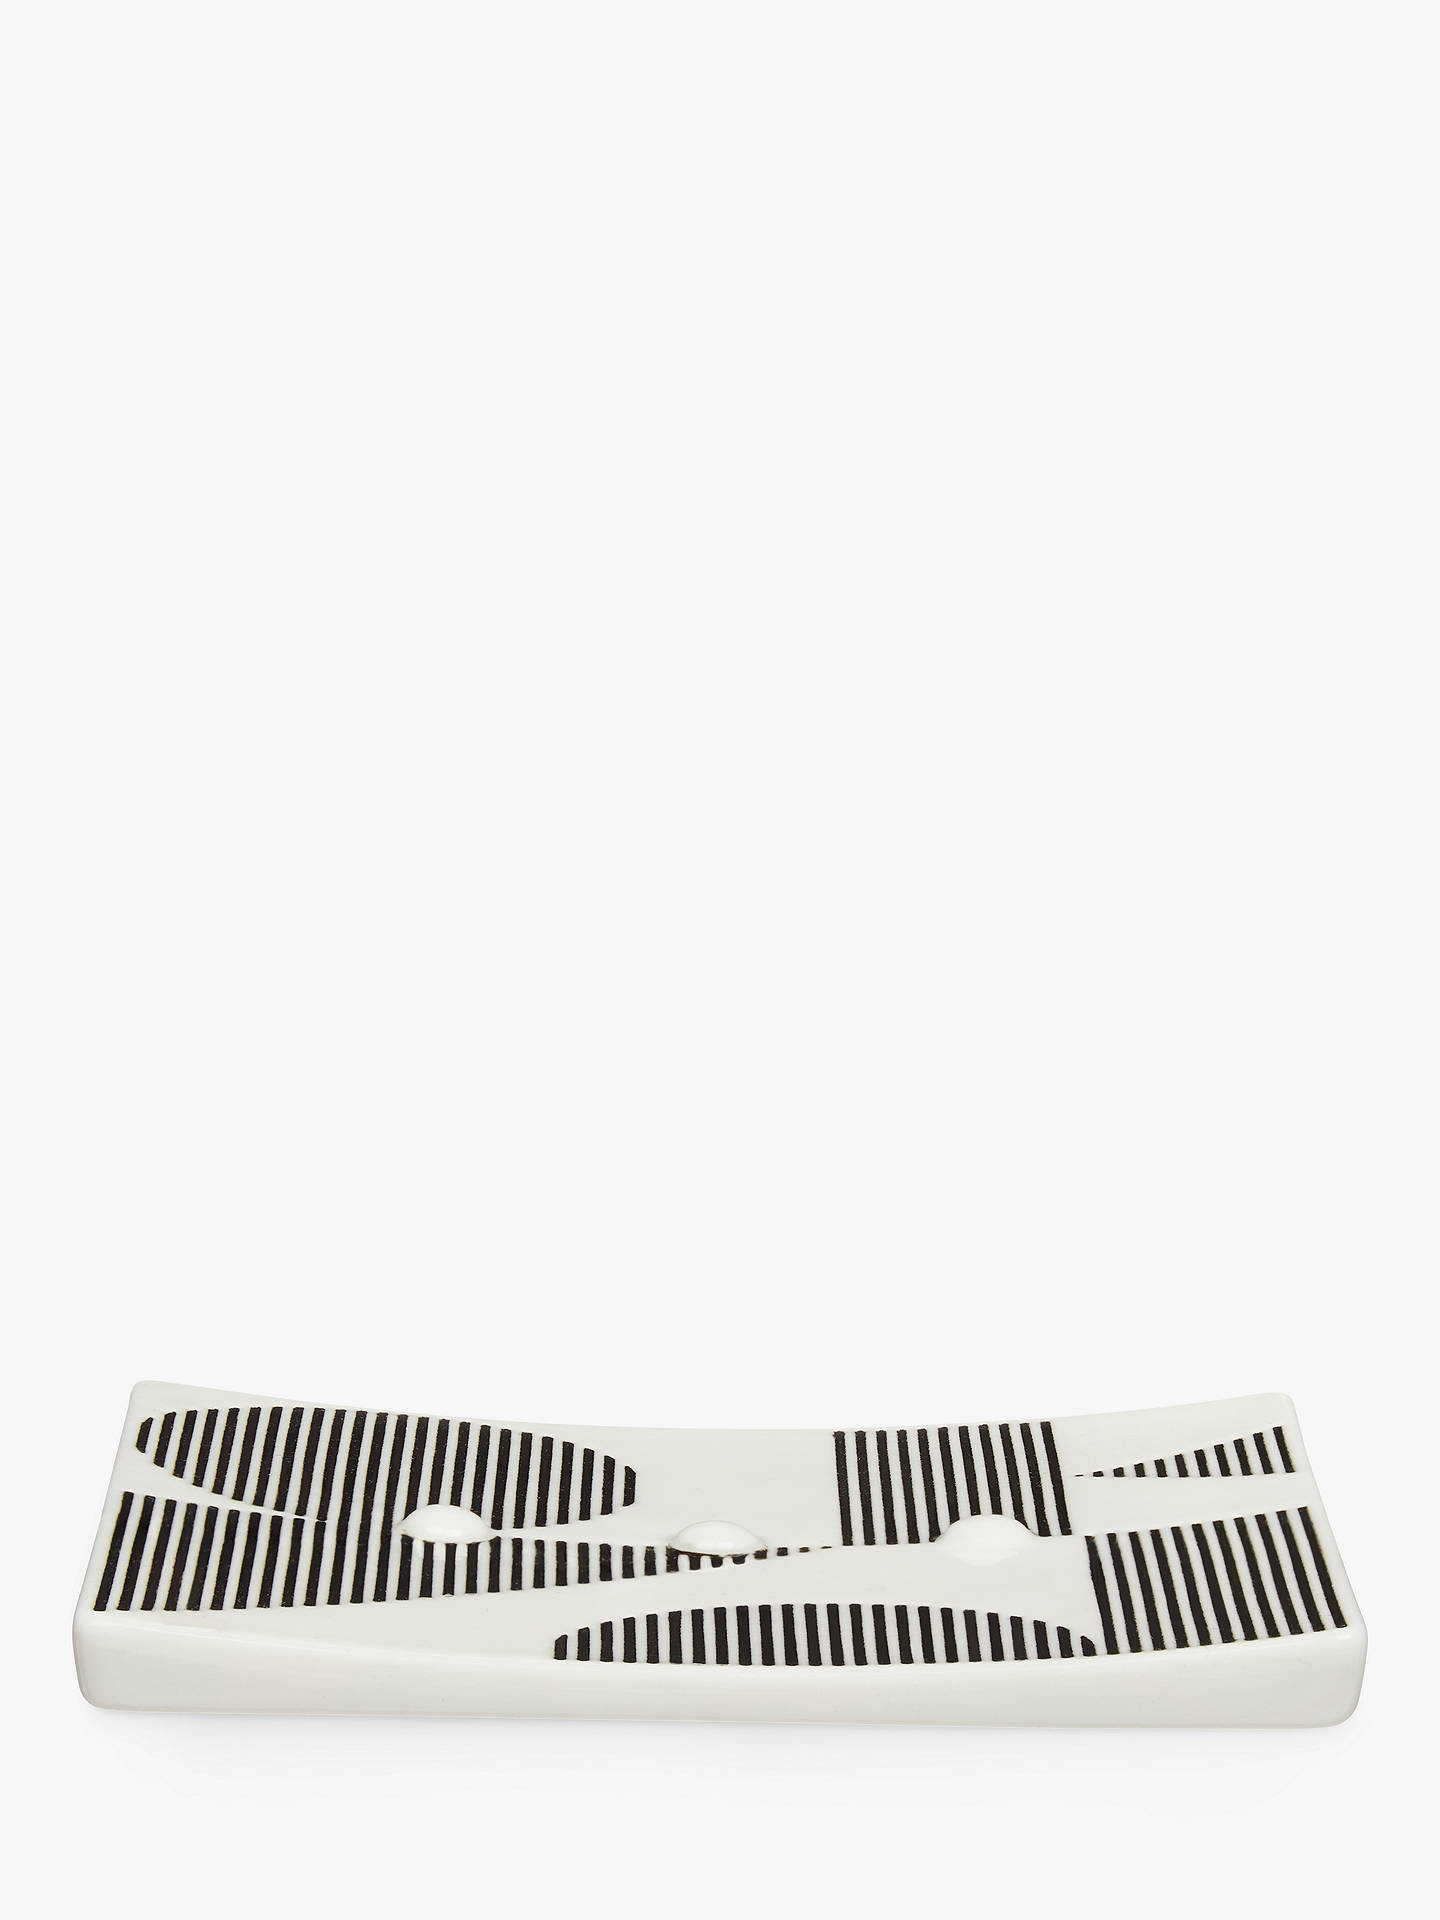 Buy PATTERNITY + John Lewis Soap Dish, Multi Online at johnlewis.com